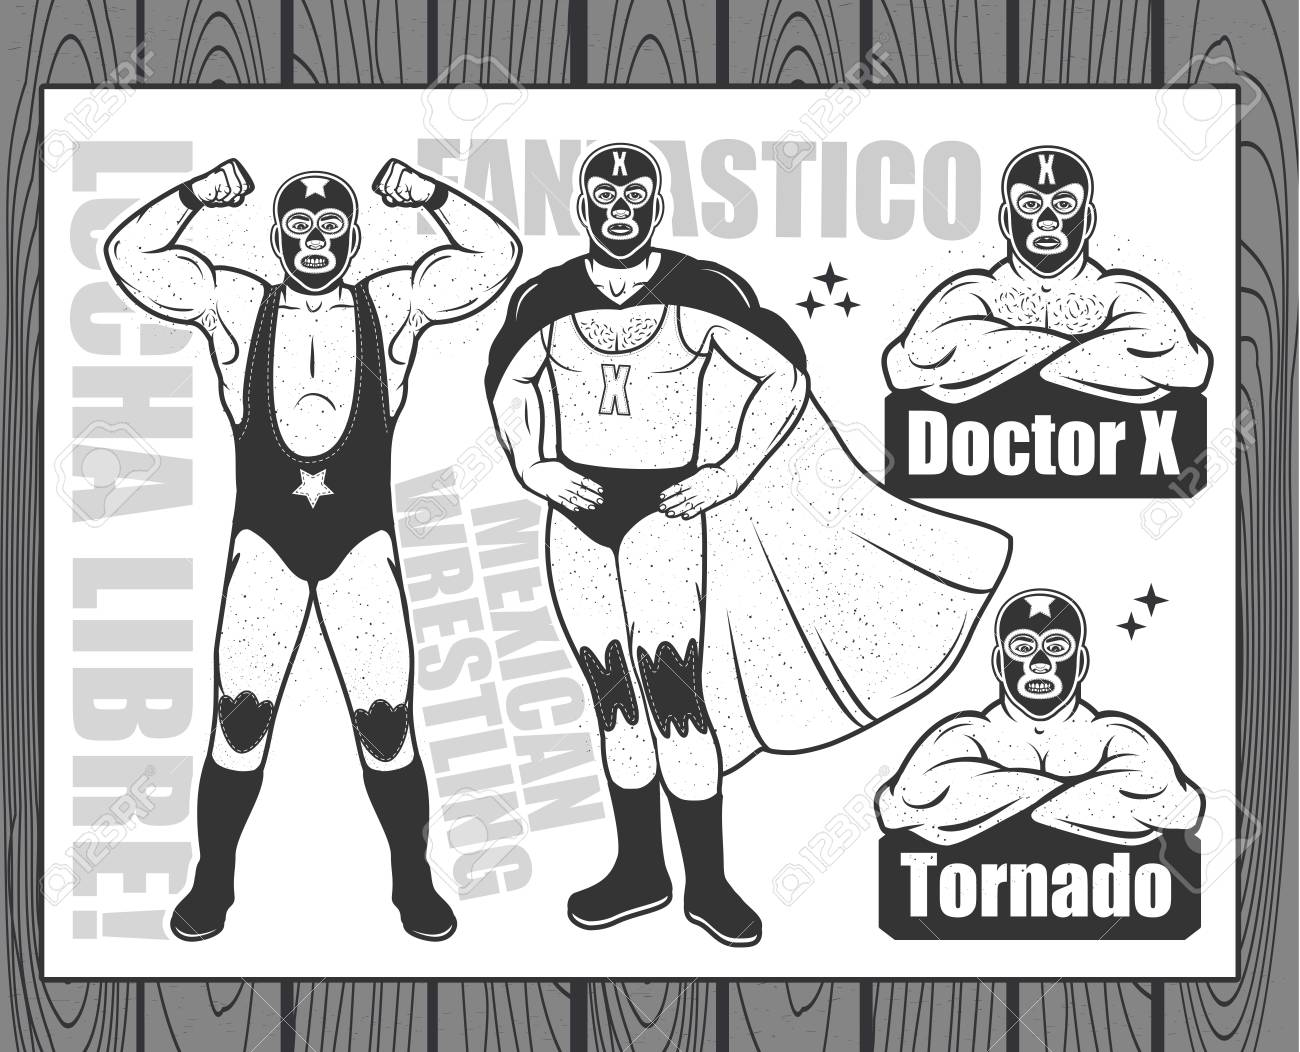 Vintage Lucha Libre Ticket With Characters Doctor X And Tornado